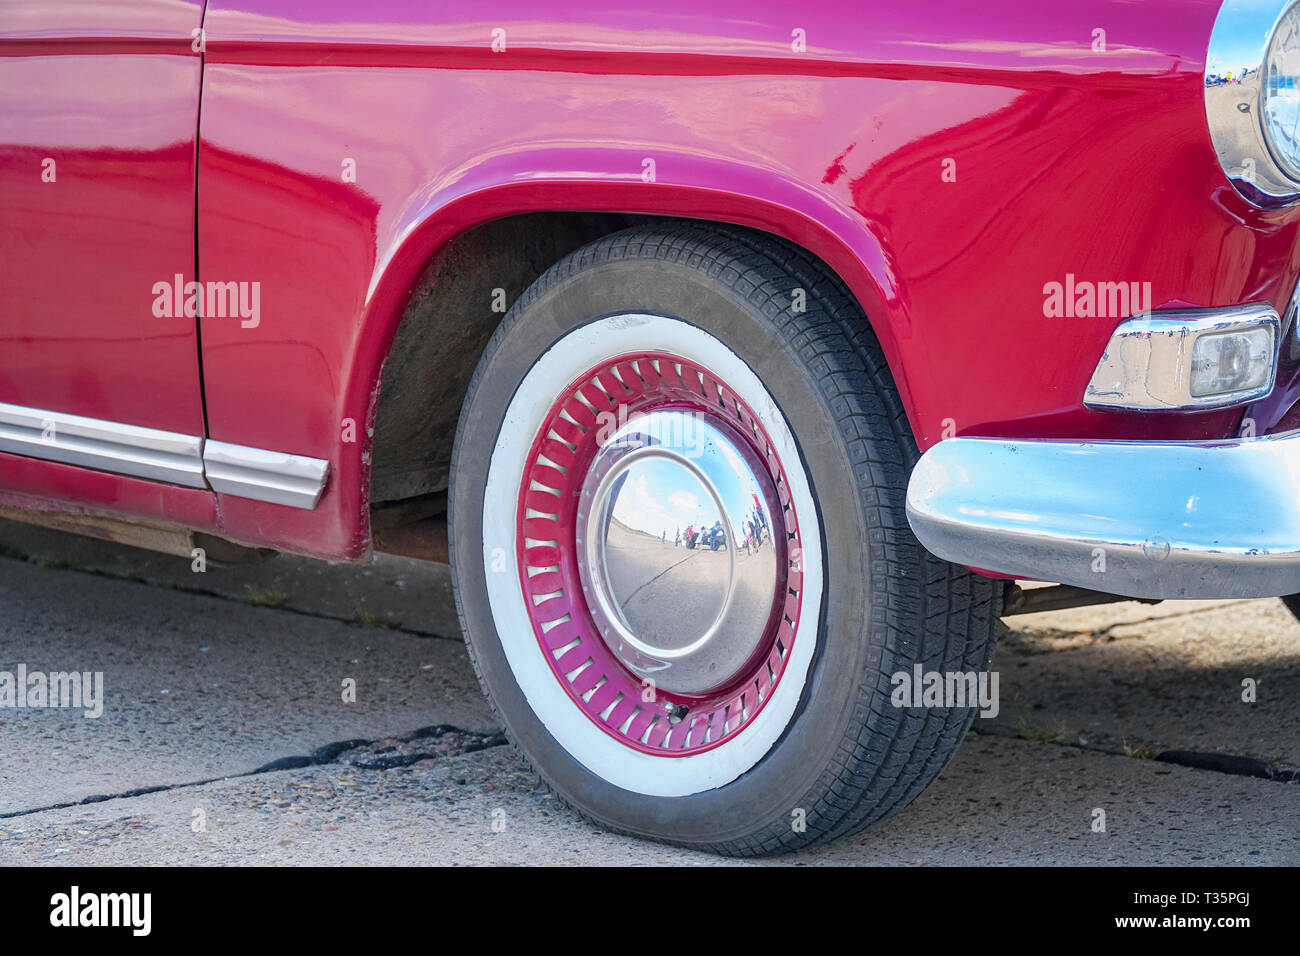 Wheel and bumper of red vintage car - Stock Image